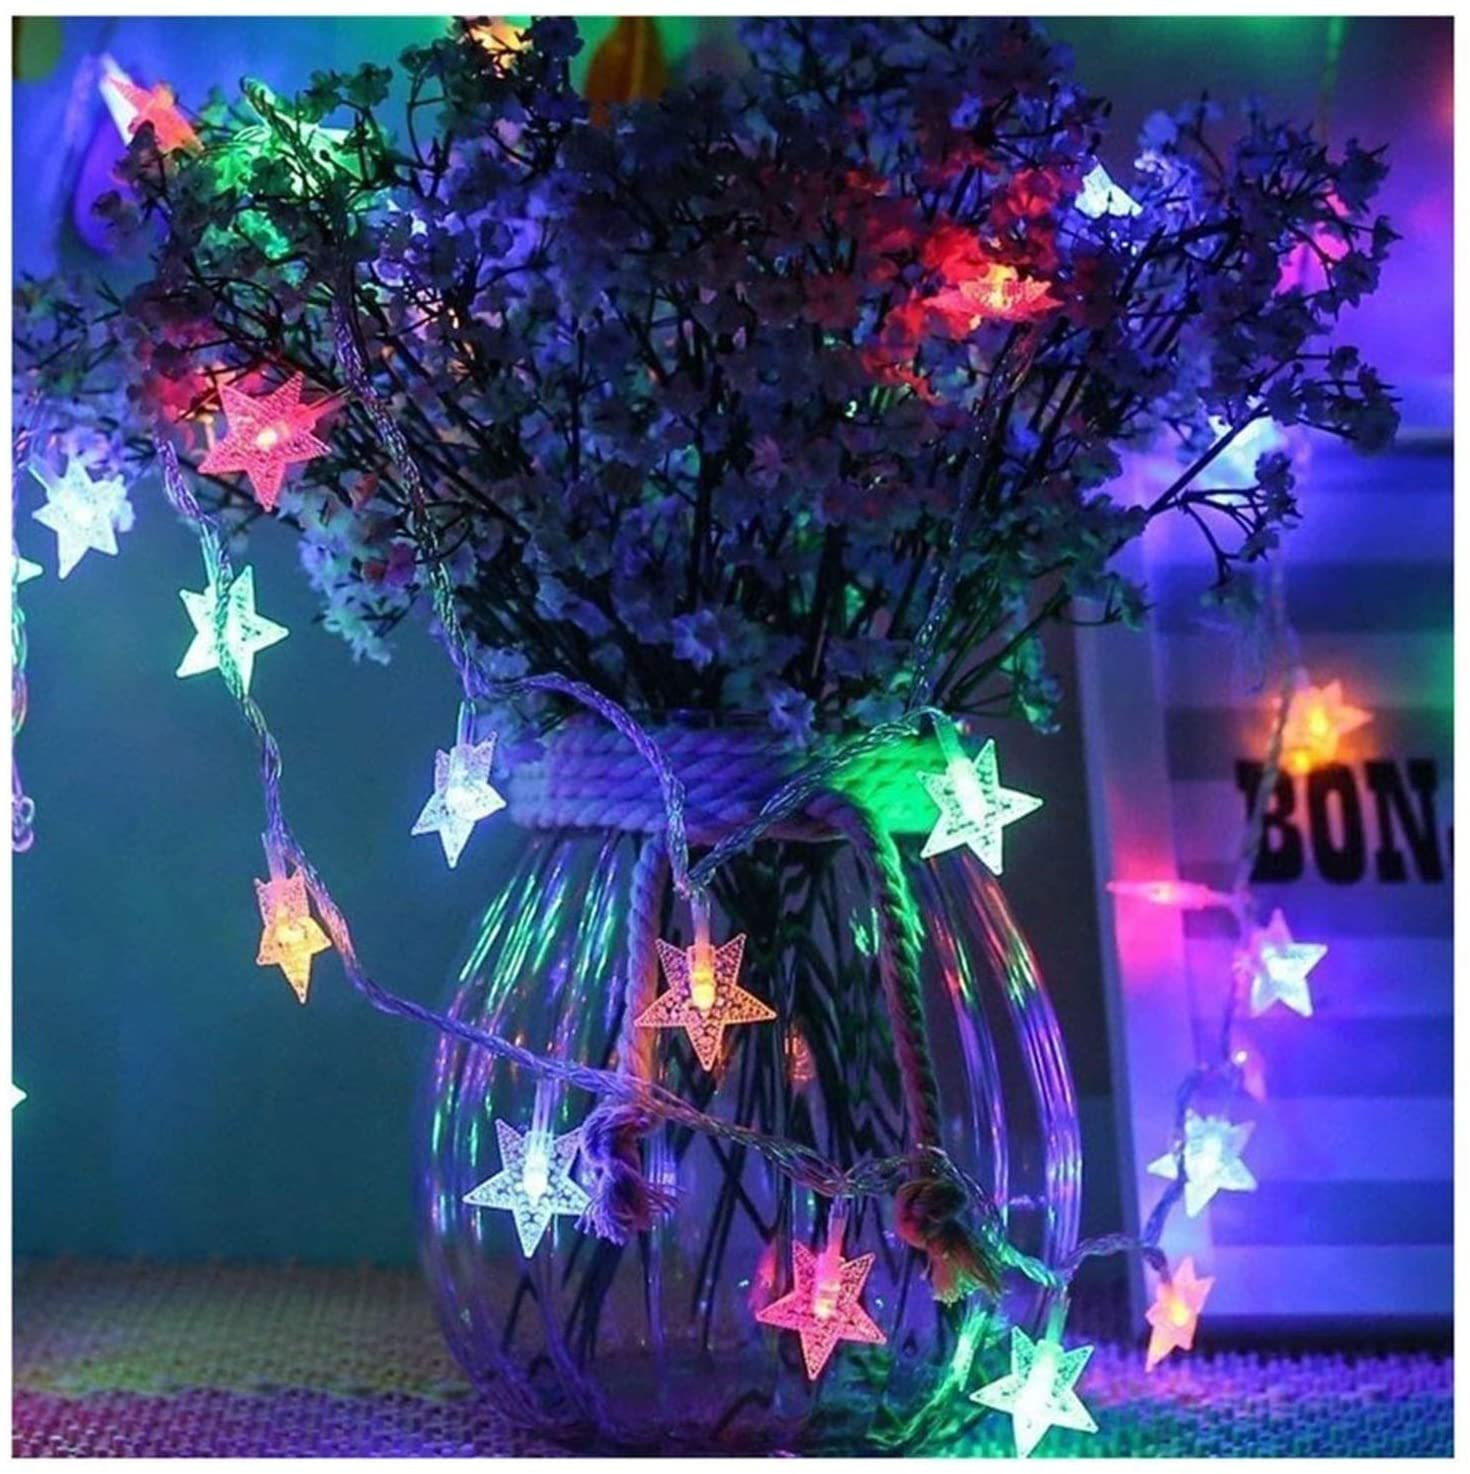 WDWL Fairy Lights, Star String Lights, 6M, 50 Lights Battery-Powered Decorative Lights,Waterproof Outdoor and Indoor LED Fairy Lights for Christmas Holiday Rooms Patio Gazebo and Wedding Decor